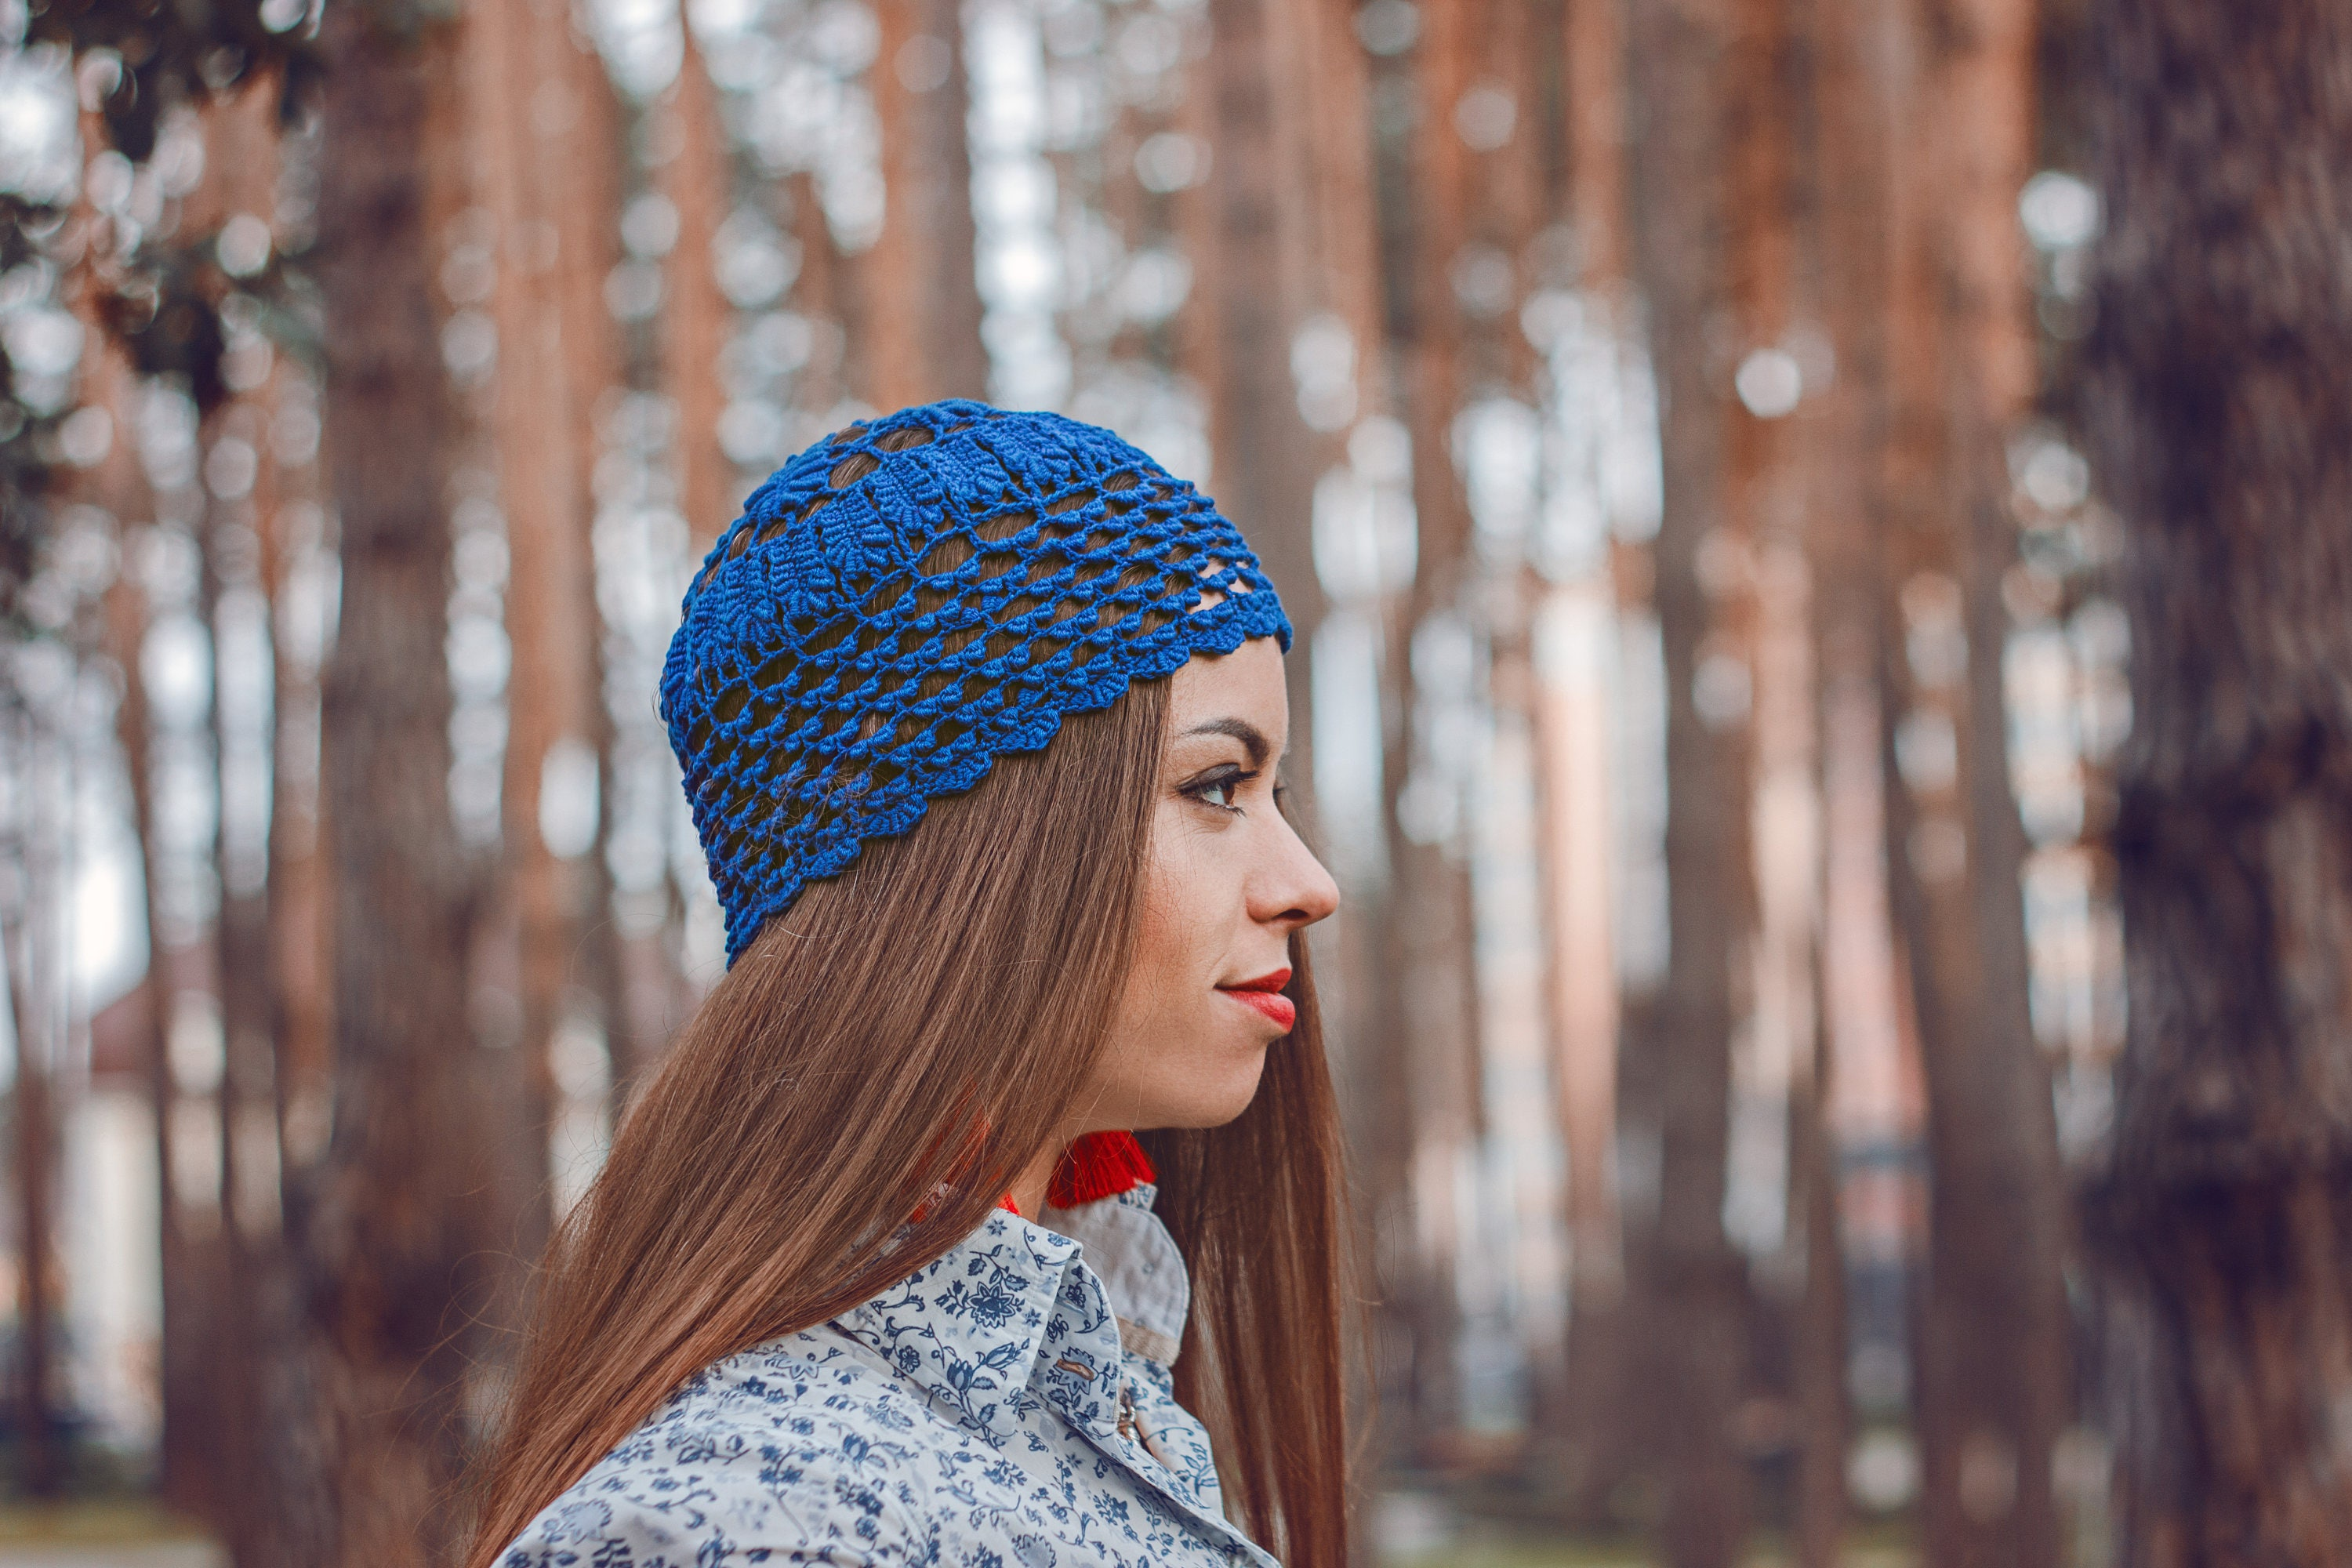 What Are Those Slouchy Beanie Hats Called - Parchment N Lead ed8179fce65